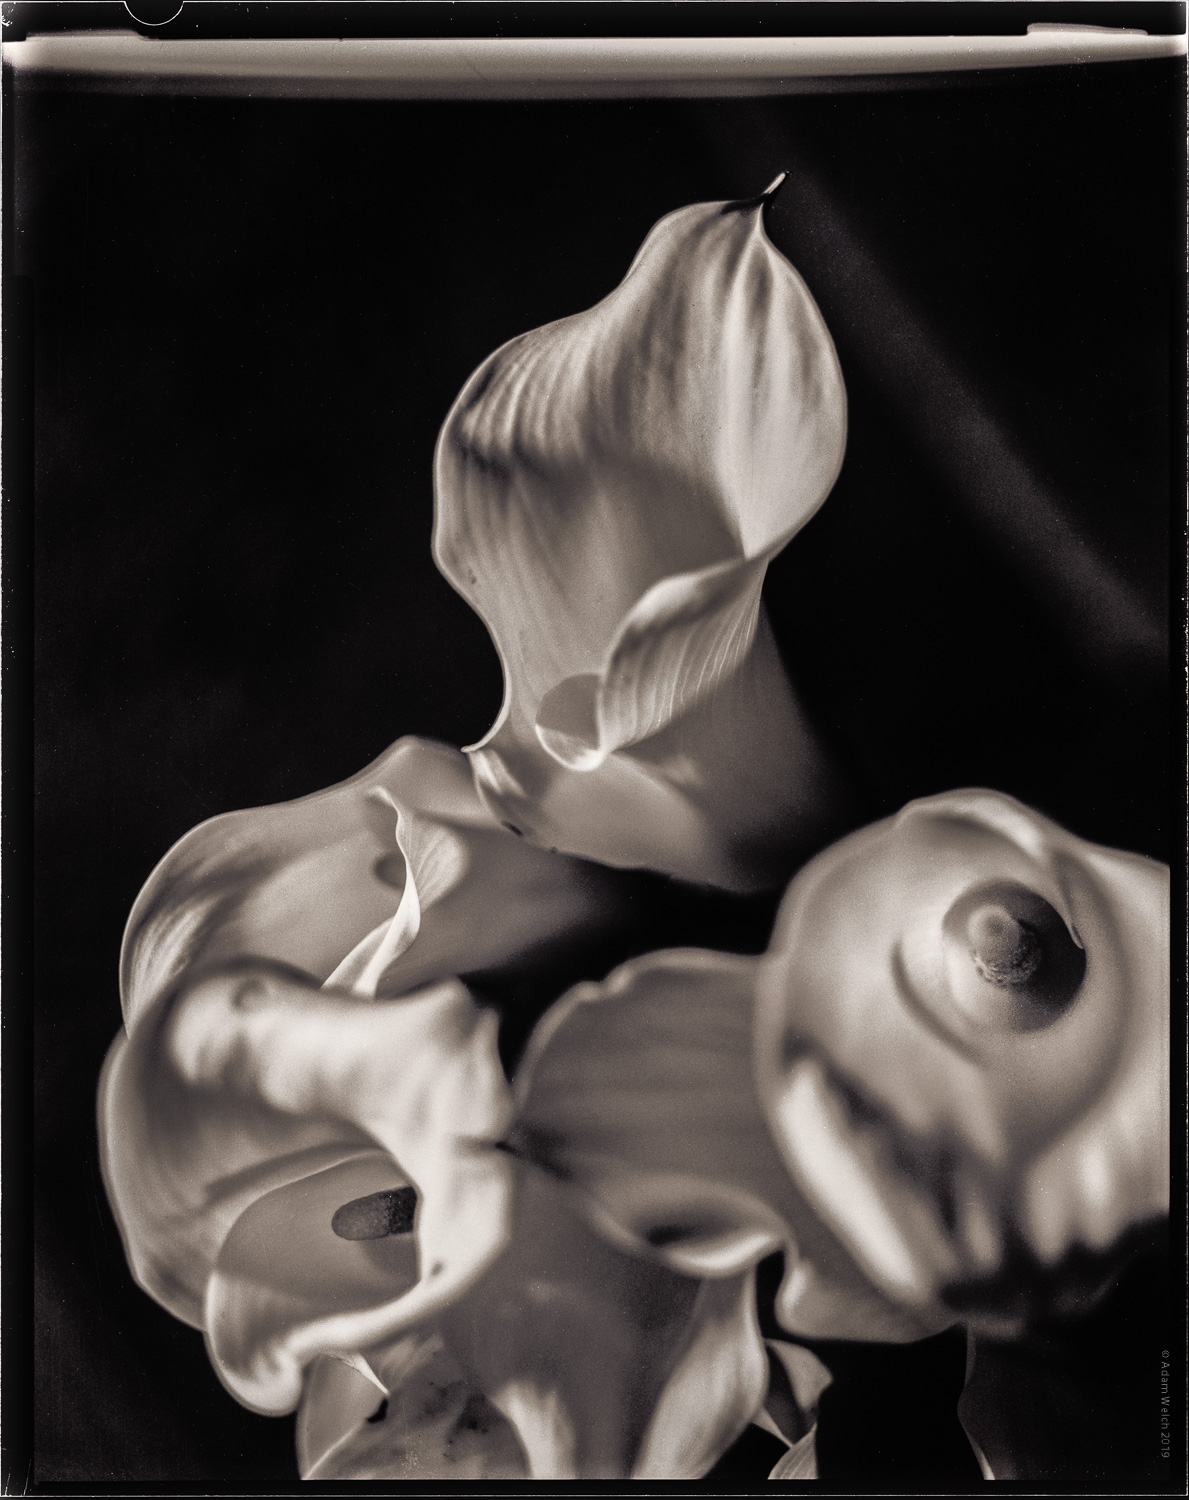 imogen-cunningham-calla-lillies-digital-photography-school-adam-welch-1